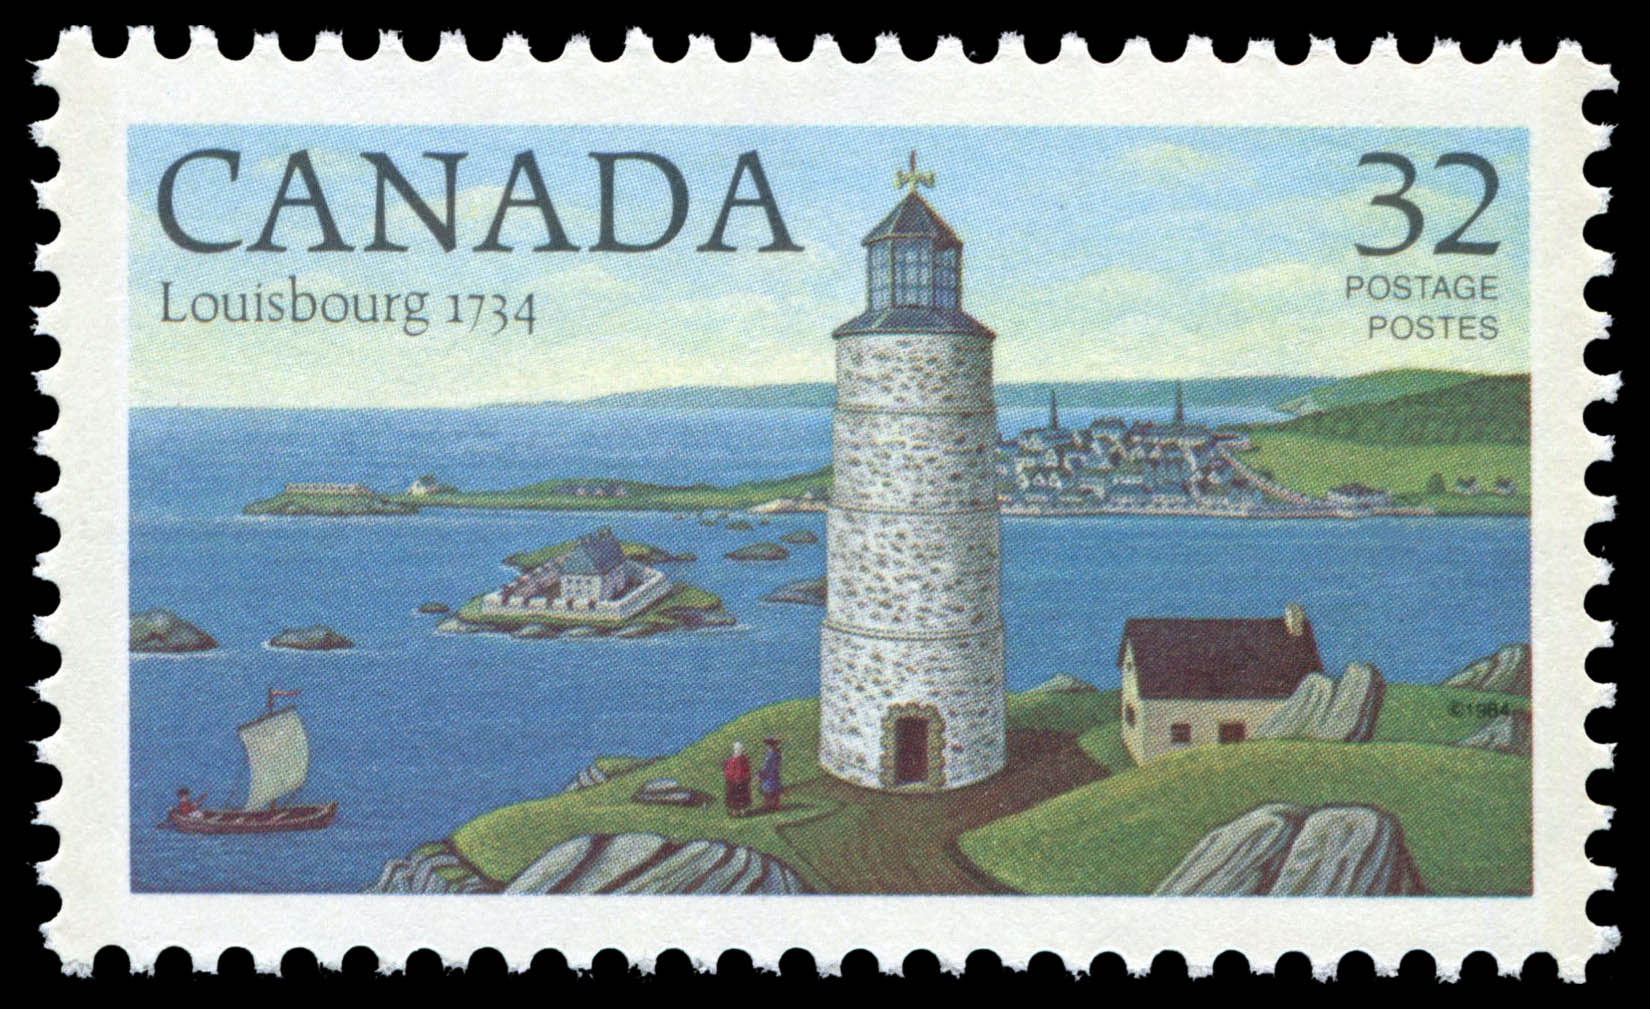 Louisbourg, 1734 Canada Postage Stamp | Lighthouses of Canada